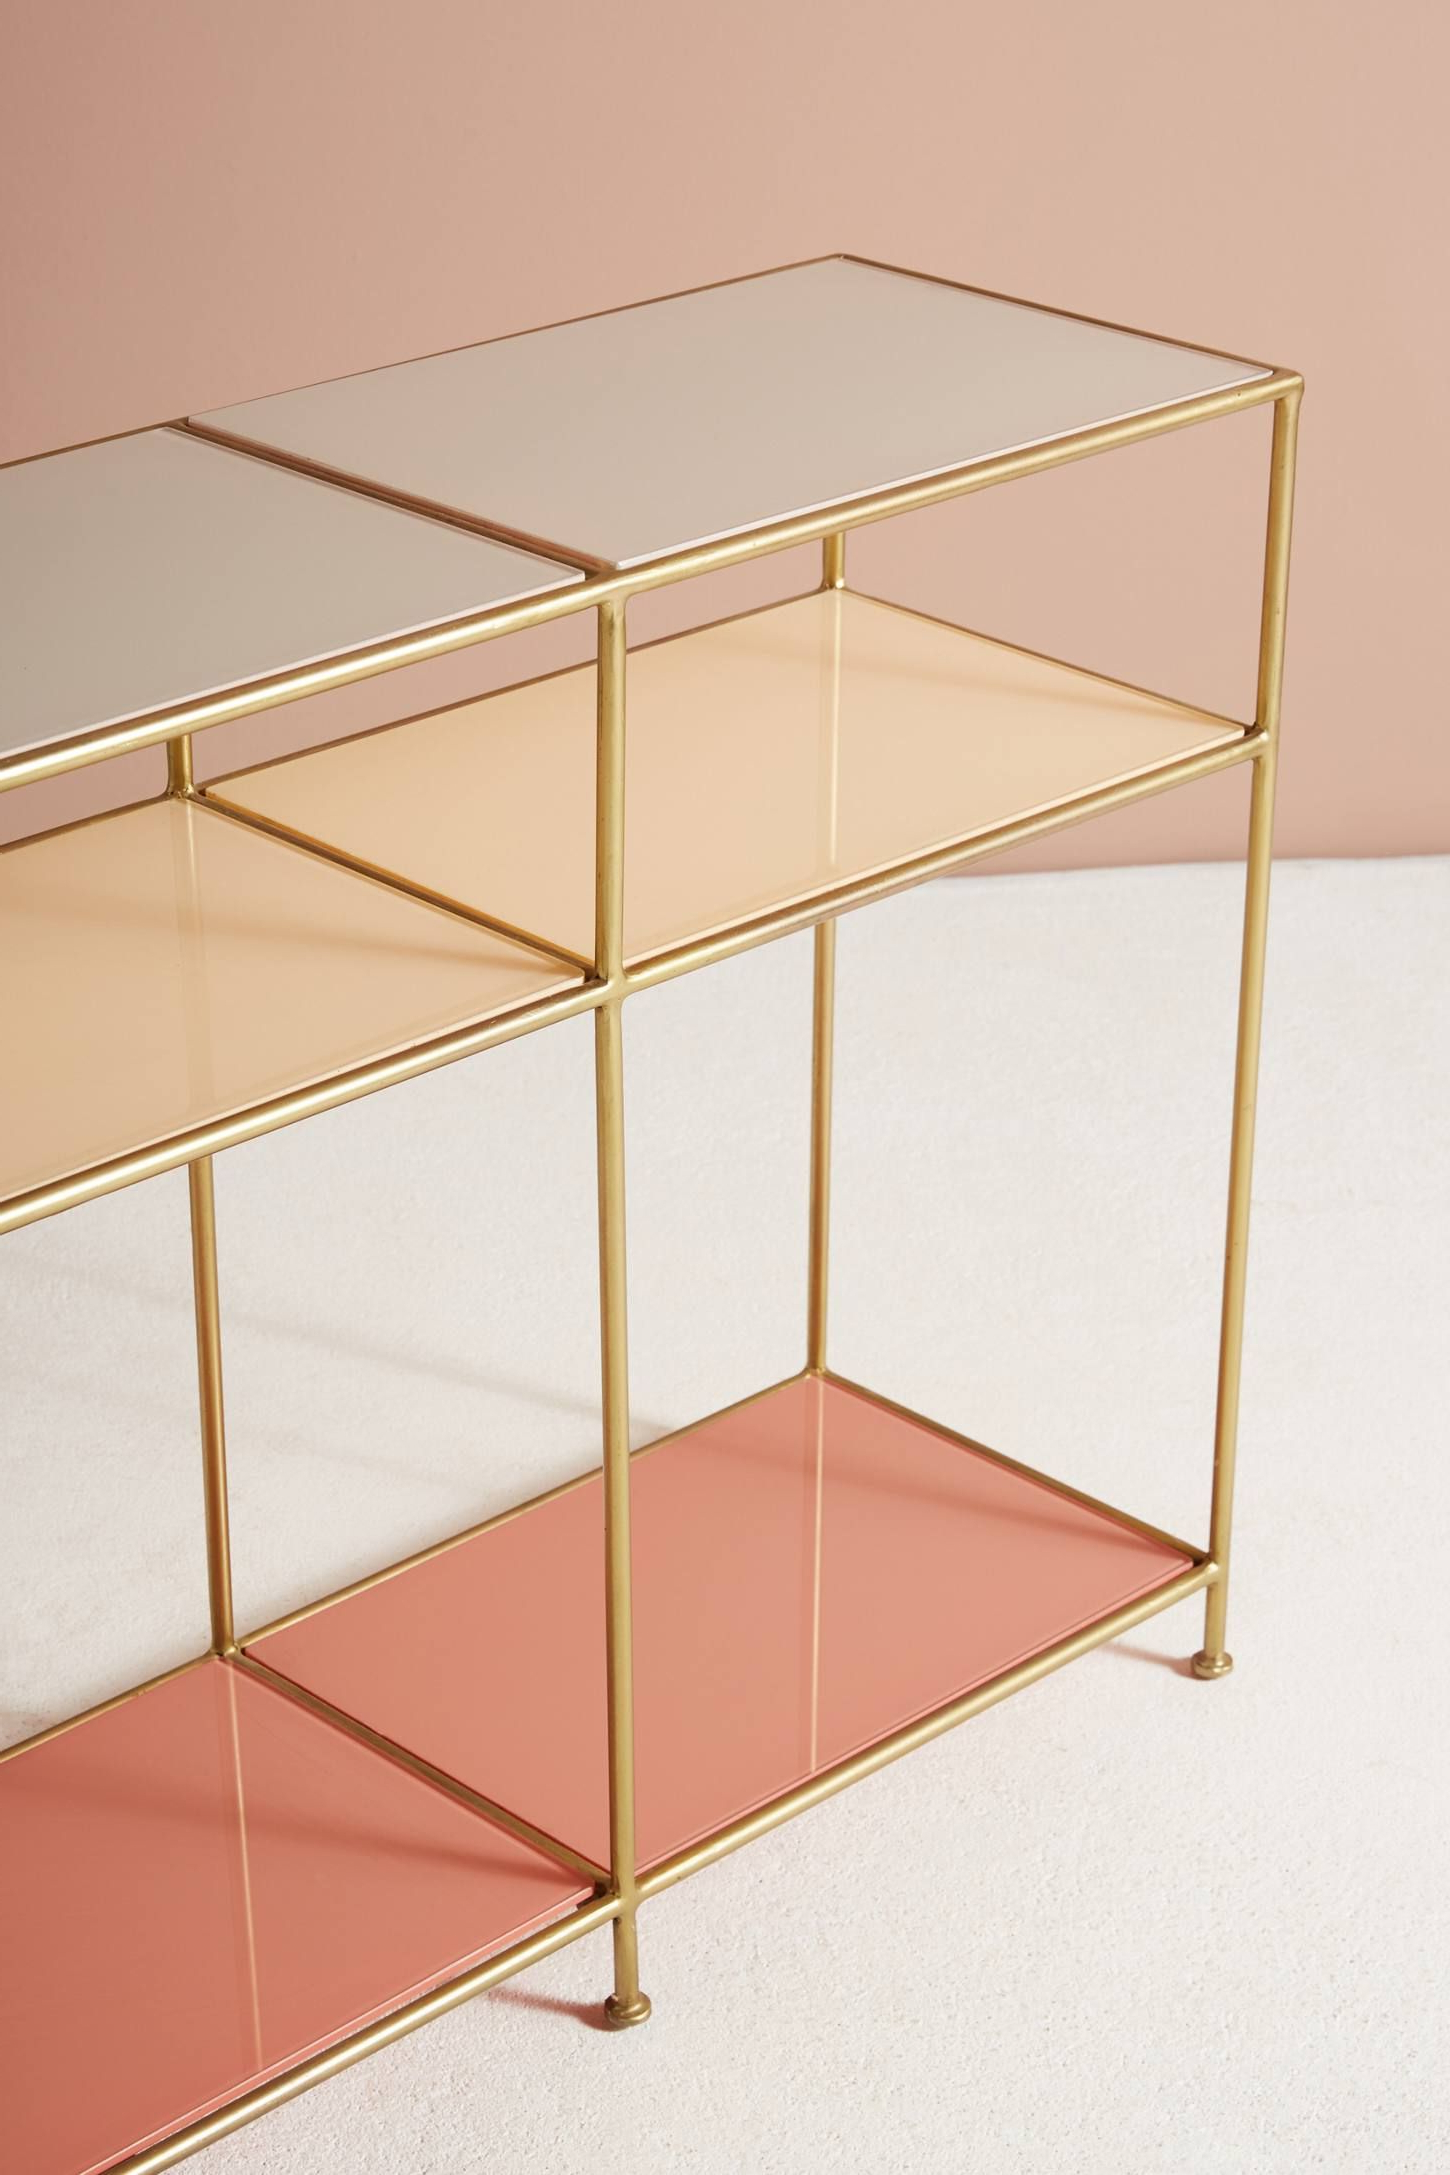 Console Tables, Consoles And Credenza Pertaining To Elke Glass Console Tables With Brass Base (View 3 of 20)